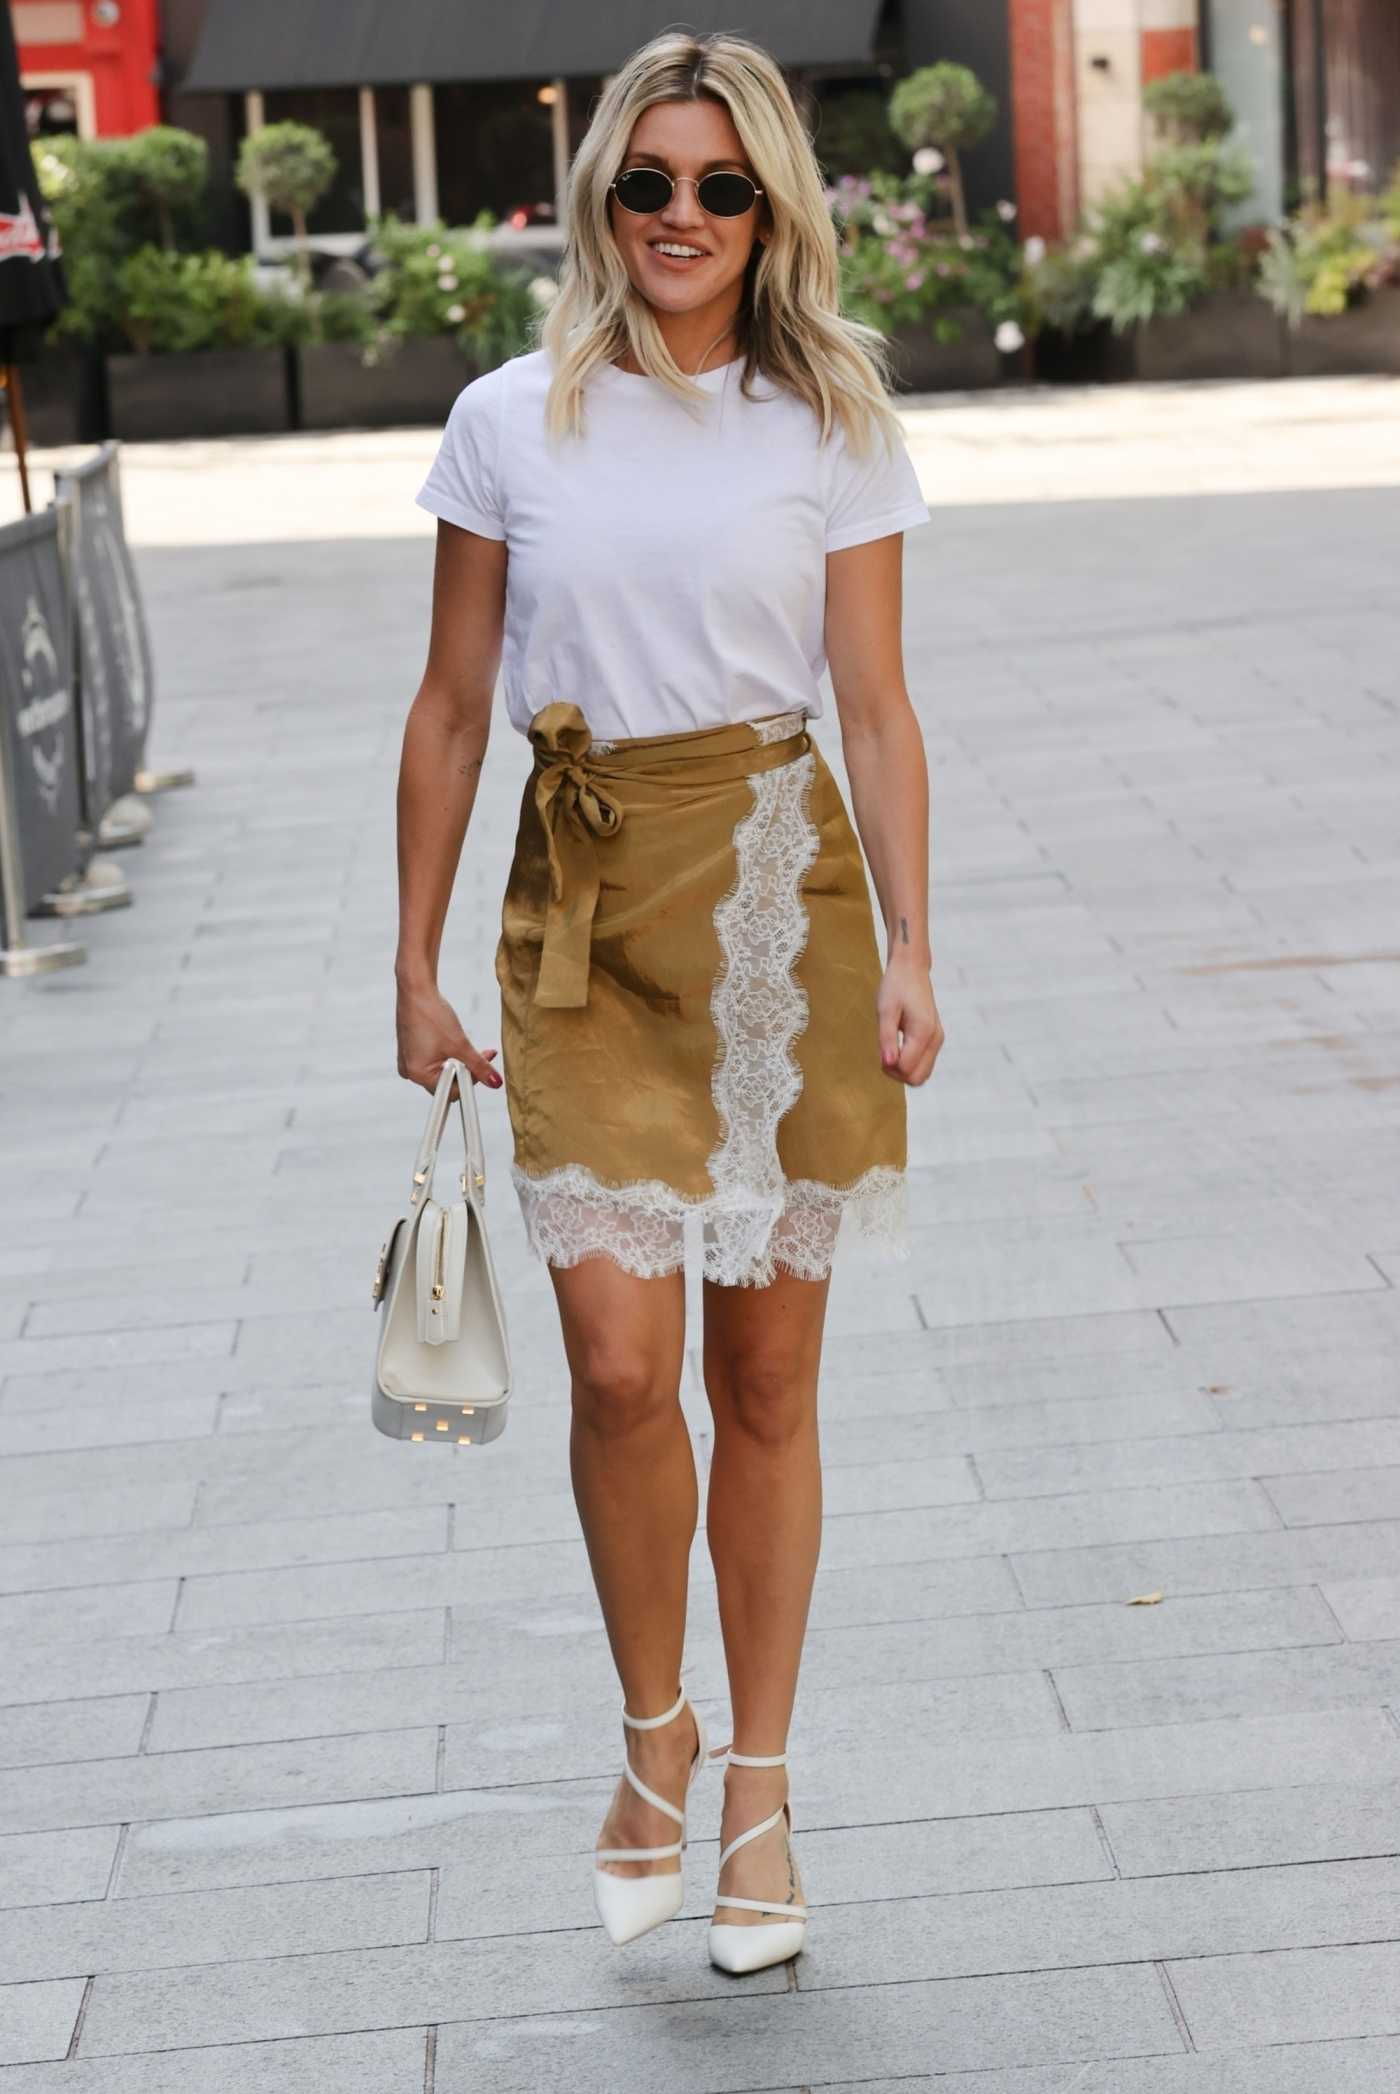 Ashley Roberts in a Gold Skirt Exits the Heart Radio Studios in London 07/22/2020